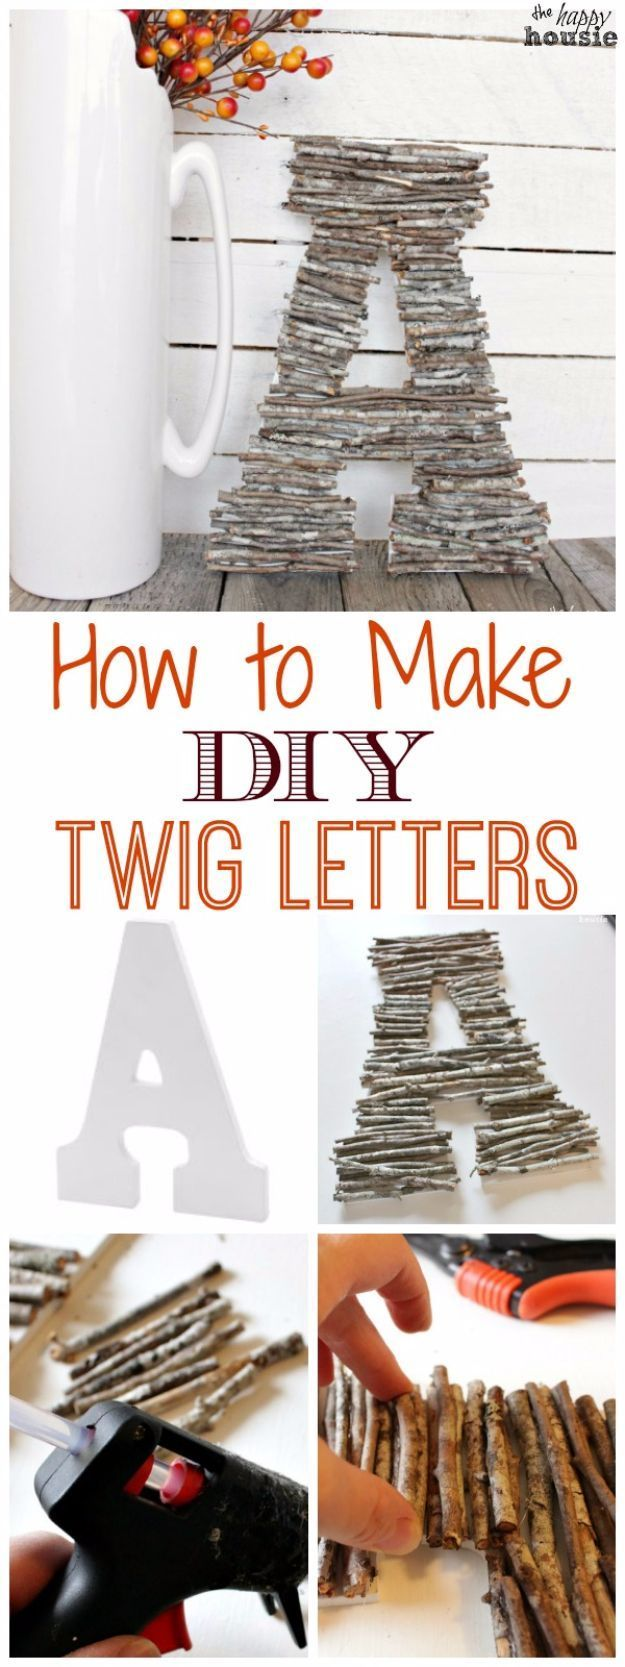 DIY Wall Letters and Initals Wall Art - DIY Twig Letters - Cool Architectural Letter Projects for Living Room Decor, Bedroom Ideas. Girl or Boy Nursery. Paint, Glitter, String Art, Easy Cardboard and Rustic Wooden Ideas http://diyprojectsforteens.com/diy-